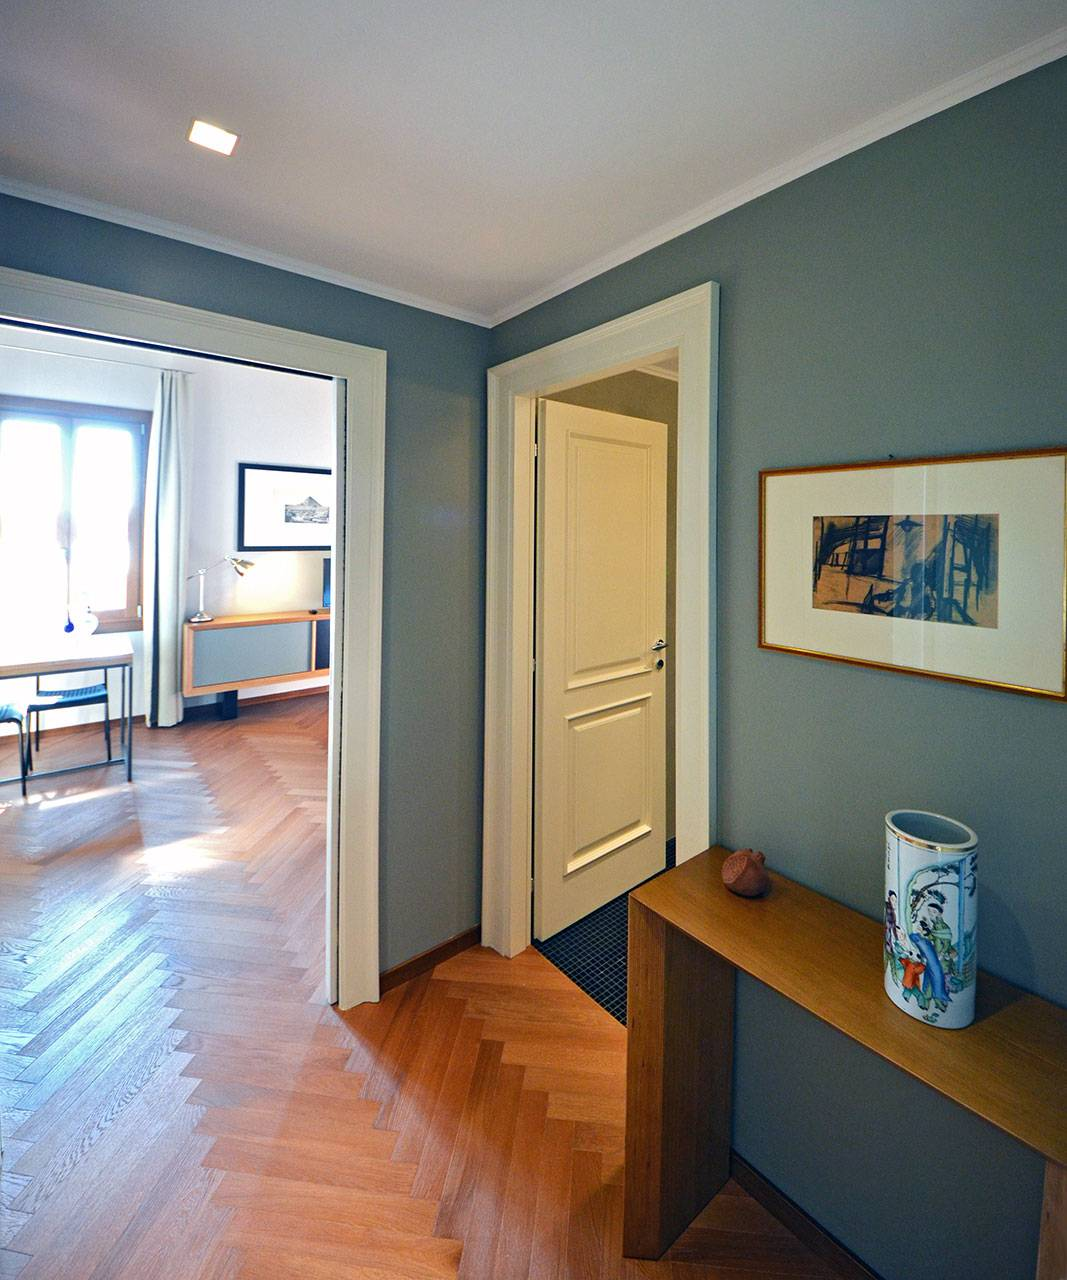 entrance to the master bedroom with access to the bathroom